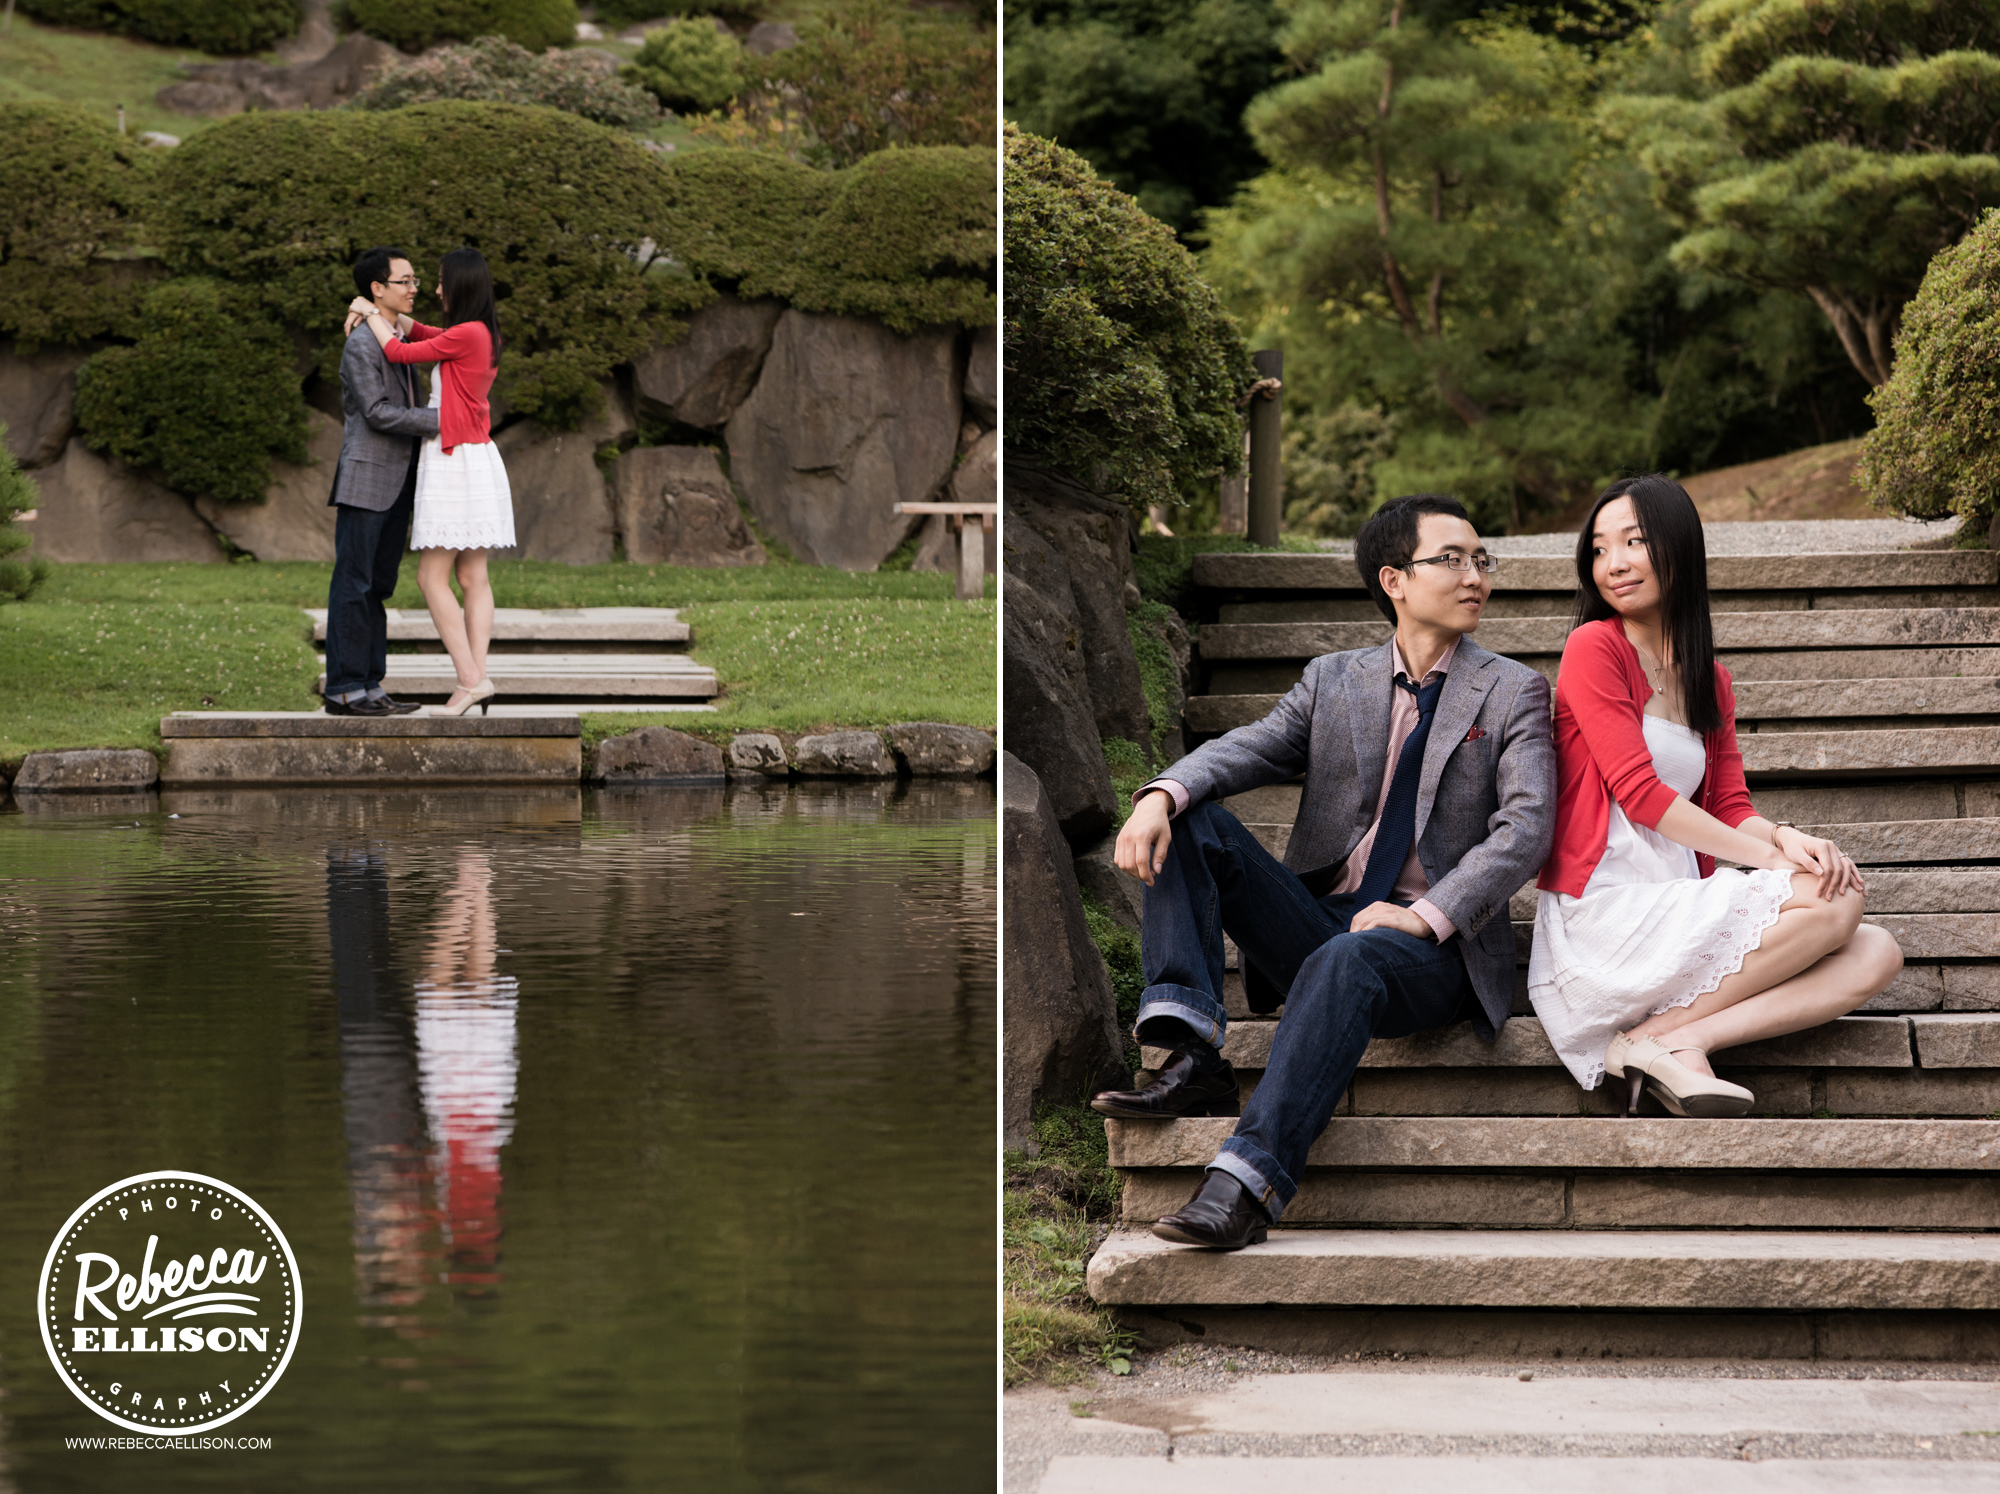 Outdoor engagement photos at the Japanese Gardens at University of Washington, a couple stands in front of a pond and sits on wooden stairs, photographed by Seattle engagement photographer Rebecca Ellison